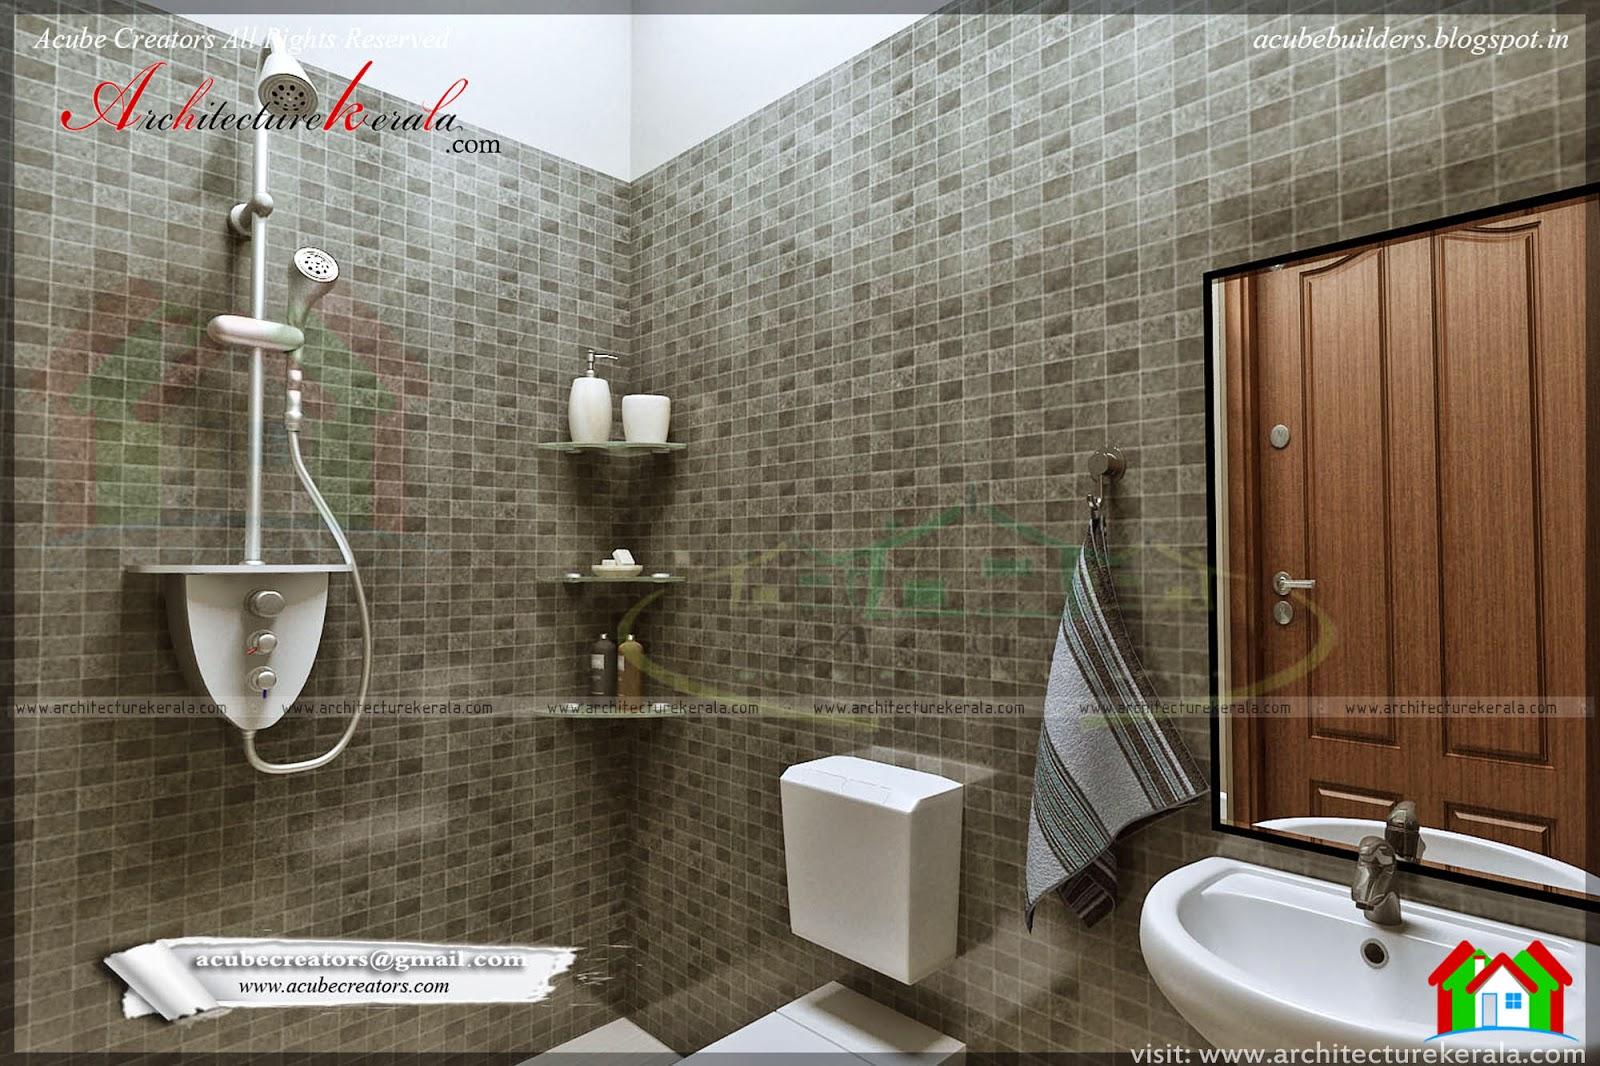 architecture kerala bathroom - Bathroom Designs Kerala